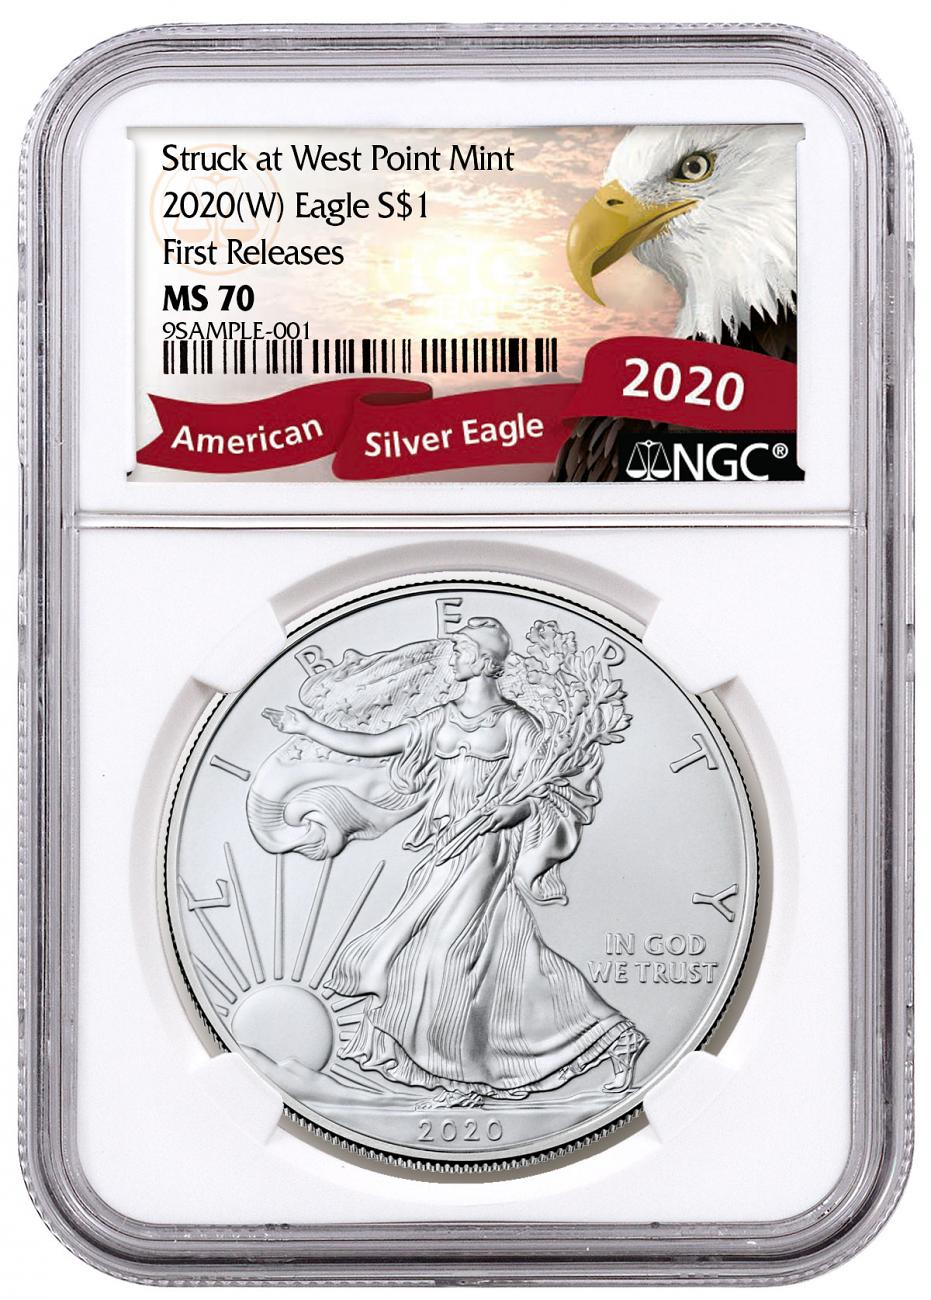 2020-(W) 1 oz Silver American Eagle Struck at West Point Mint NGC MS70 FR Exclusive Eagle Label